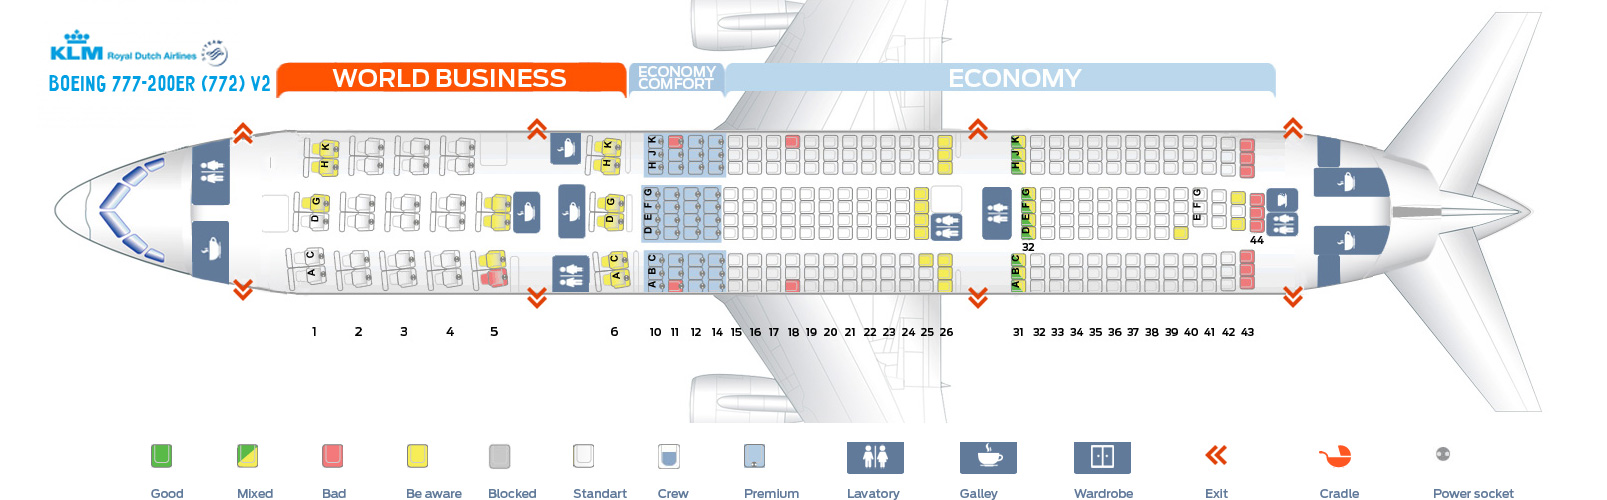 Klm Seat Map klm seat chart   Cogu.lessecretsdeparis.co Klm Seat Map